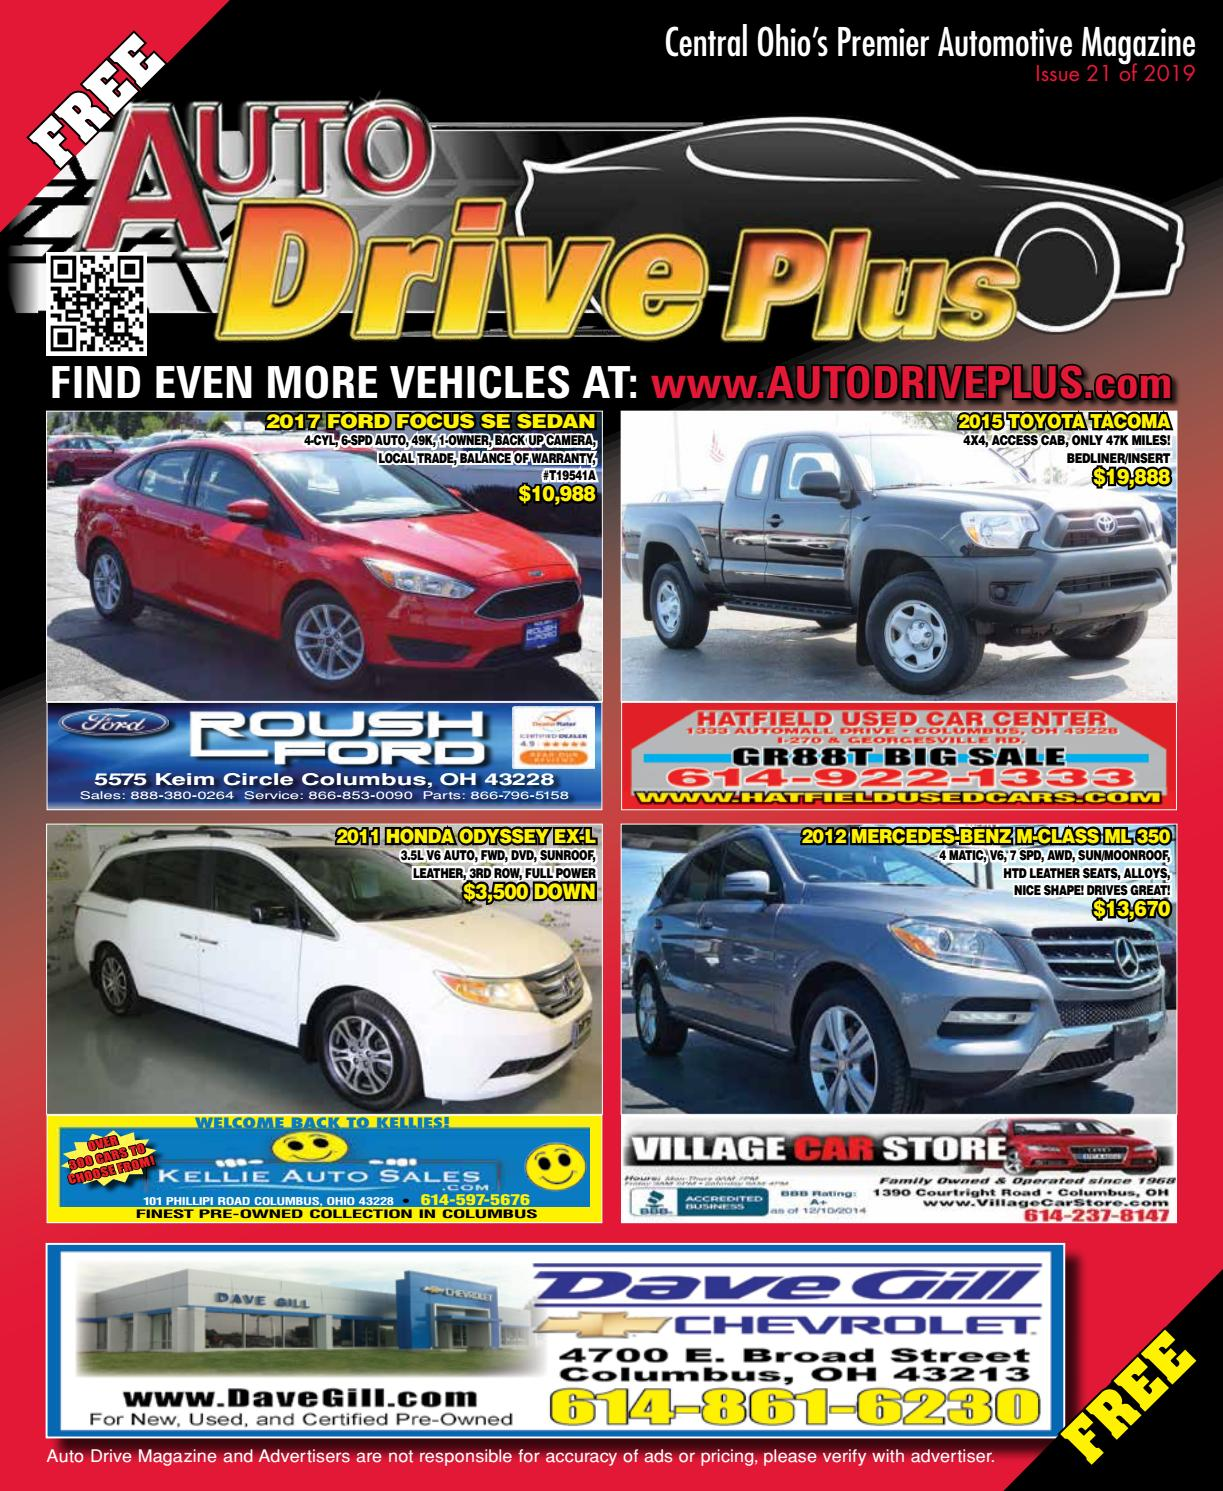 Keim Pre Owned >> Auto Drive Plus Issue 21 2019 By Autodriveplus Issuu